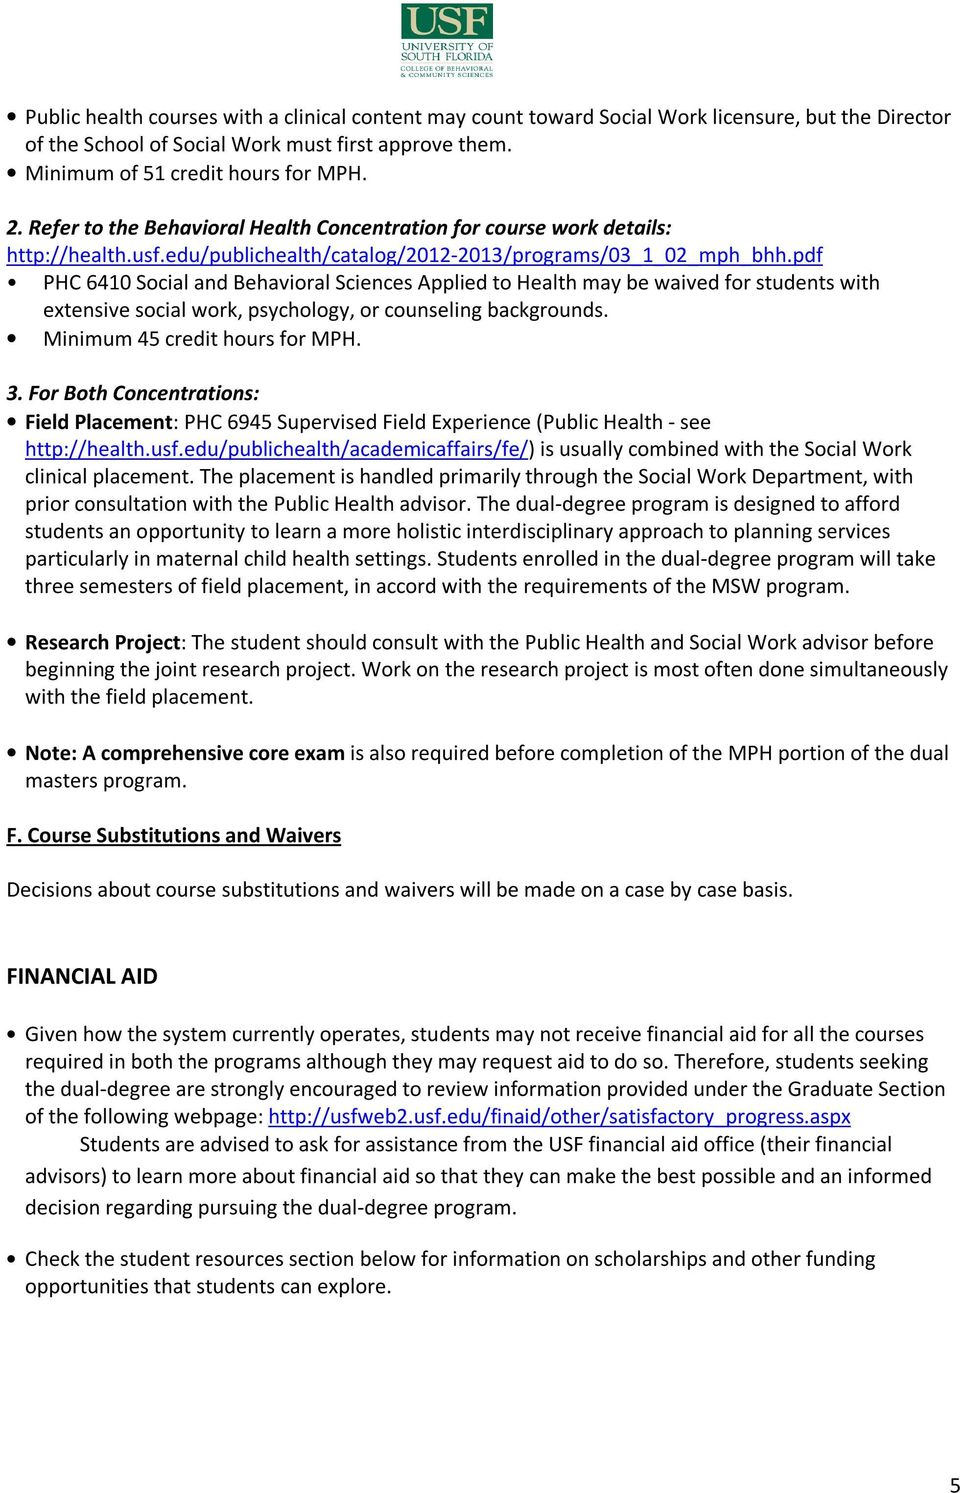 pdf PHC 6410 Social and Behavioral Sciences Applied to Health may be waived for students with extensive social work, psychology, or counseling backgrounds. Minimum 45 credit hours for MPH. 3.